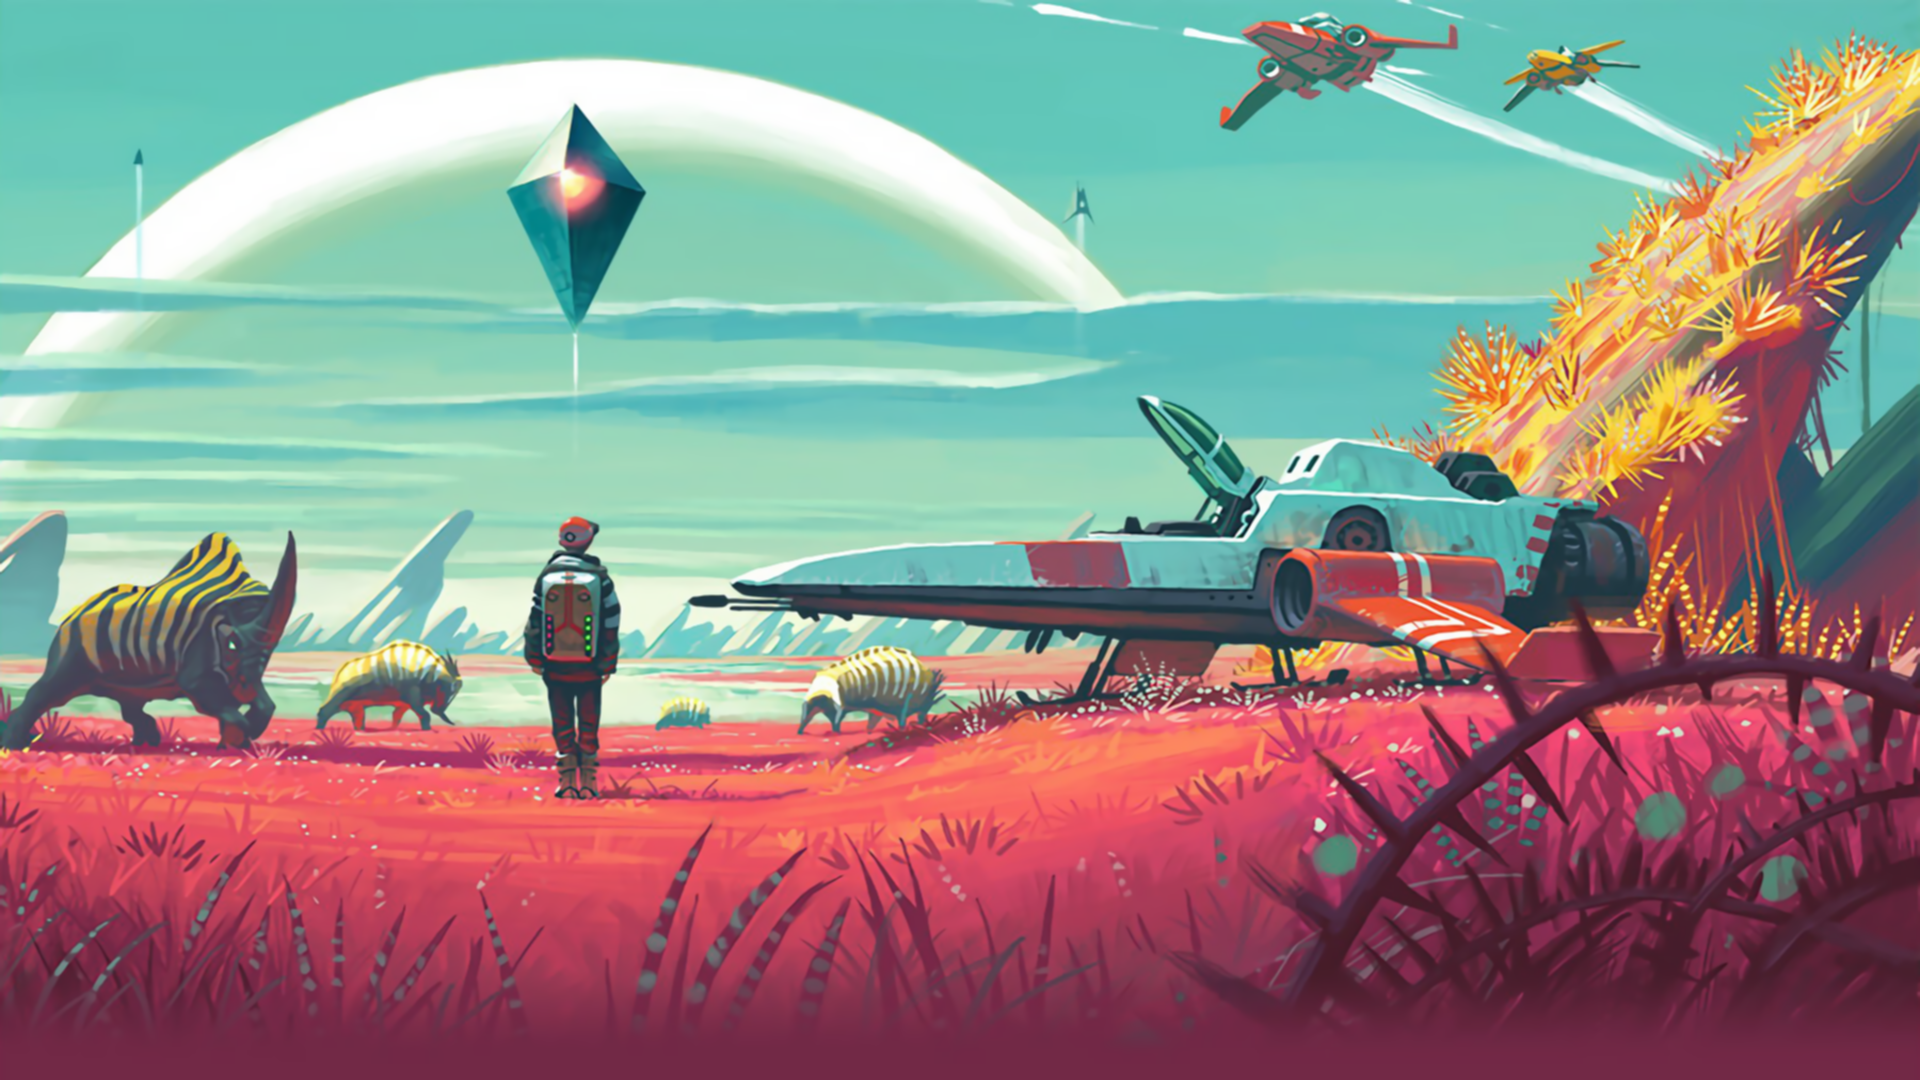 Should disappointed gamers be able to get a refund for No Man's Sky?